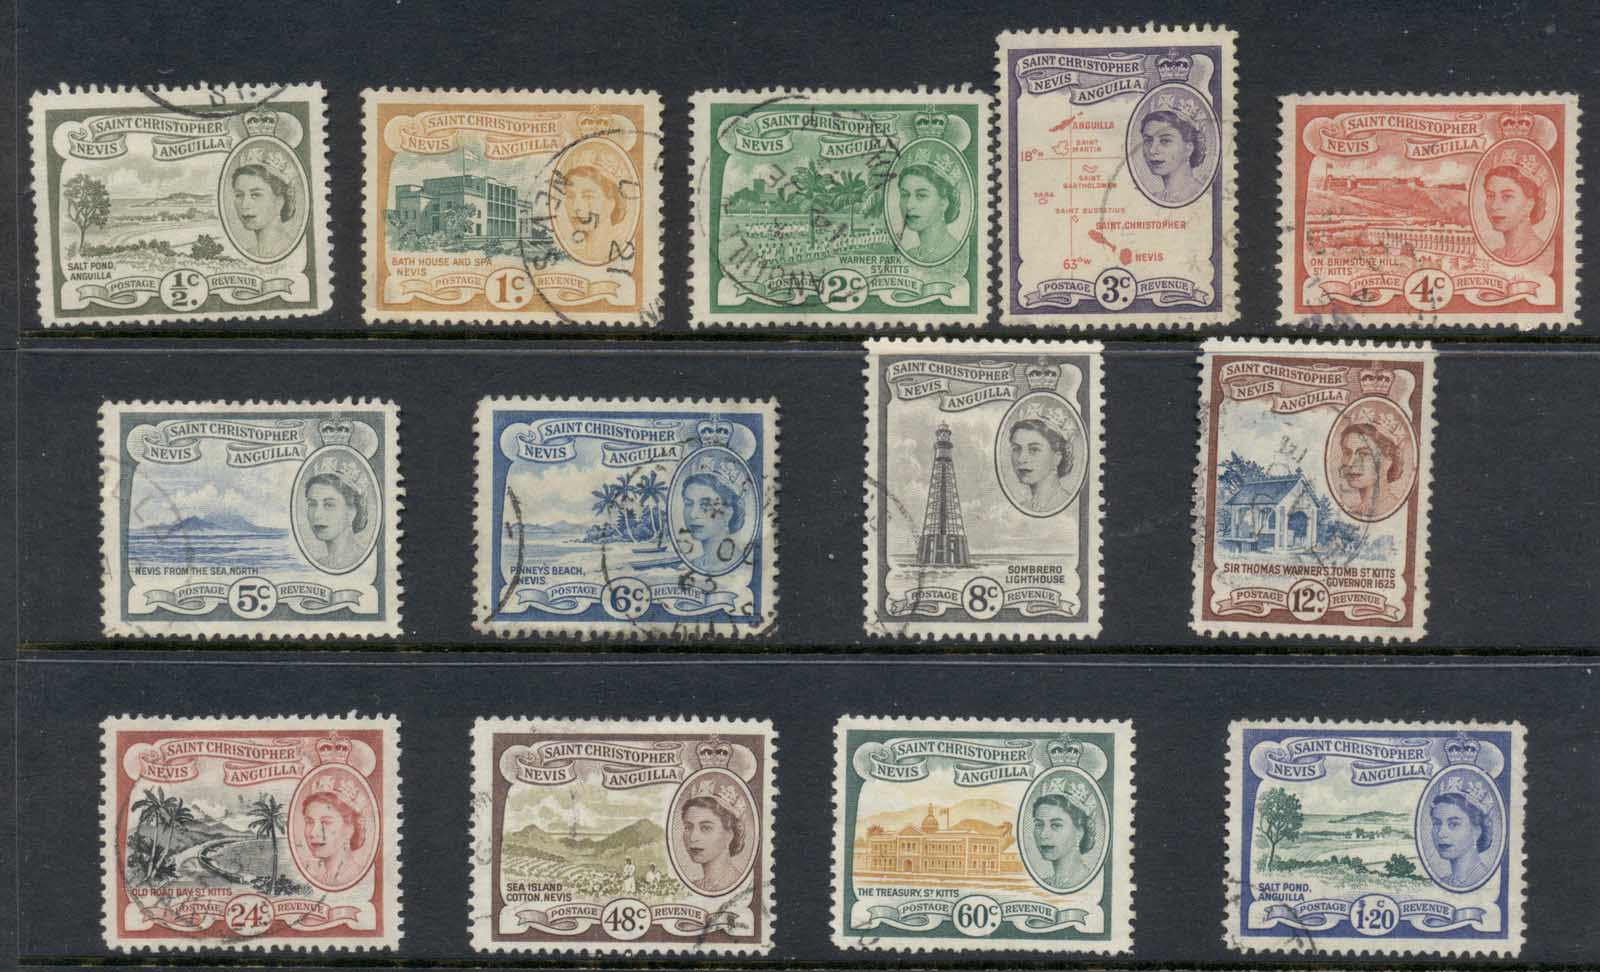 St Christopher Nevis Anguilla 1954-57 QEII Pictorials to $1.20 FU